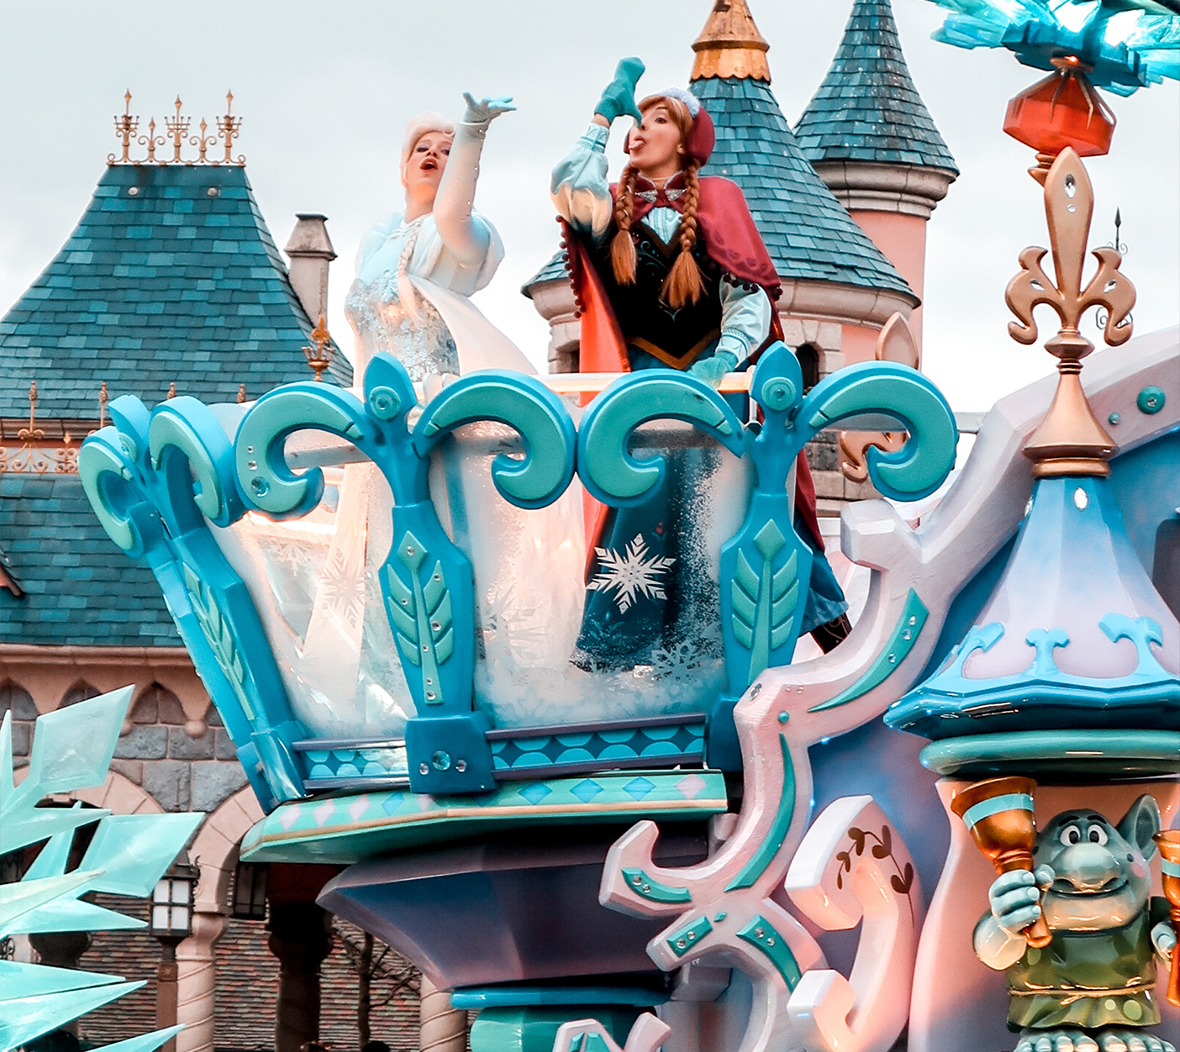 Disney's Elsa and Anna from Frozen on a carnival float in a Disneyland Paris parade